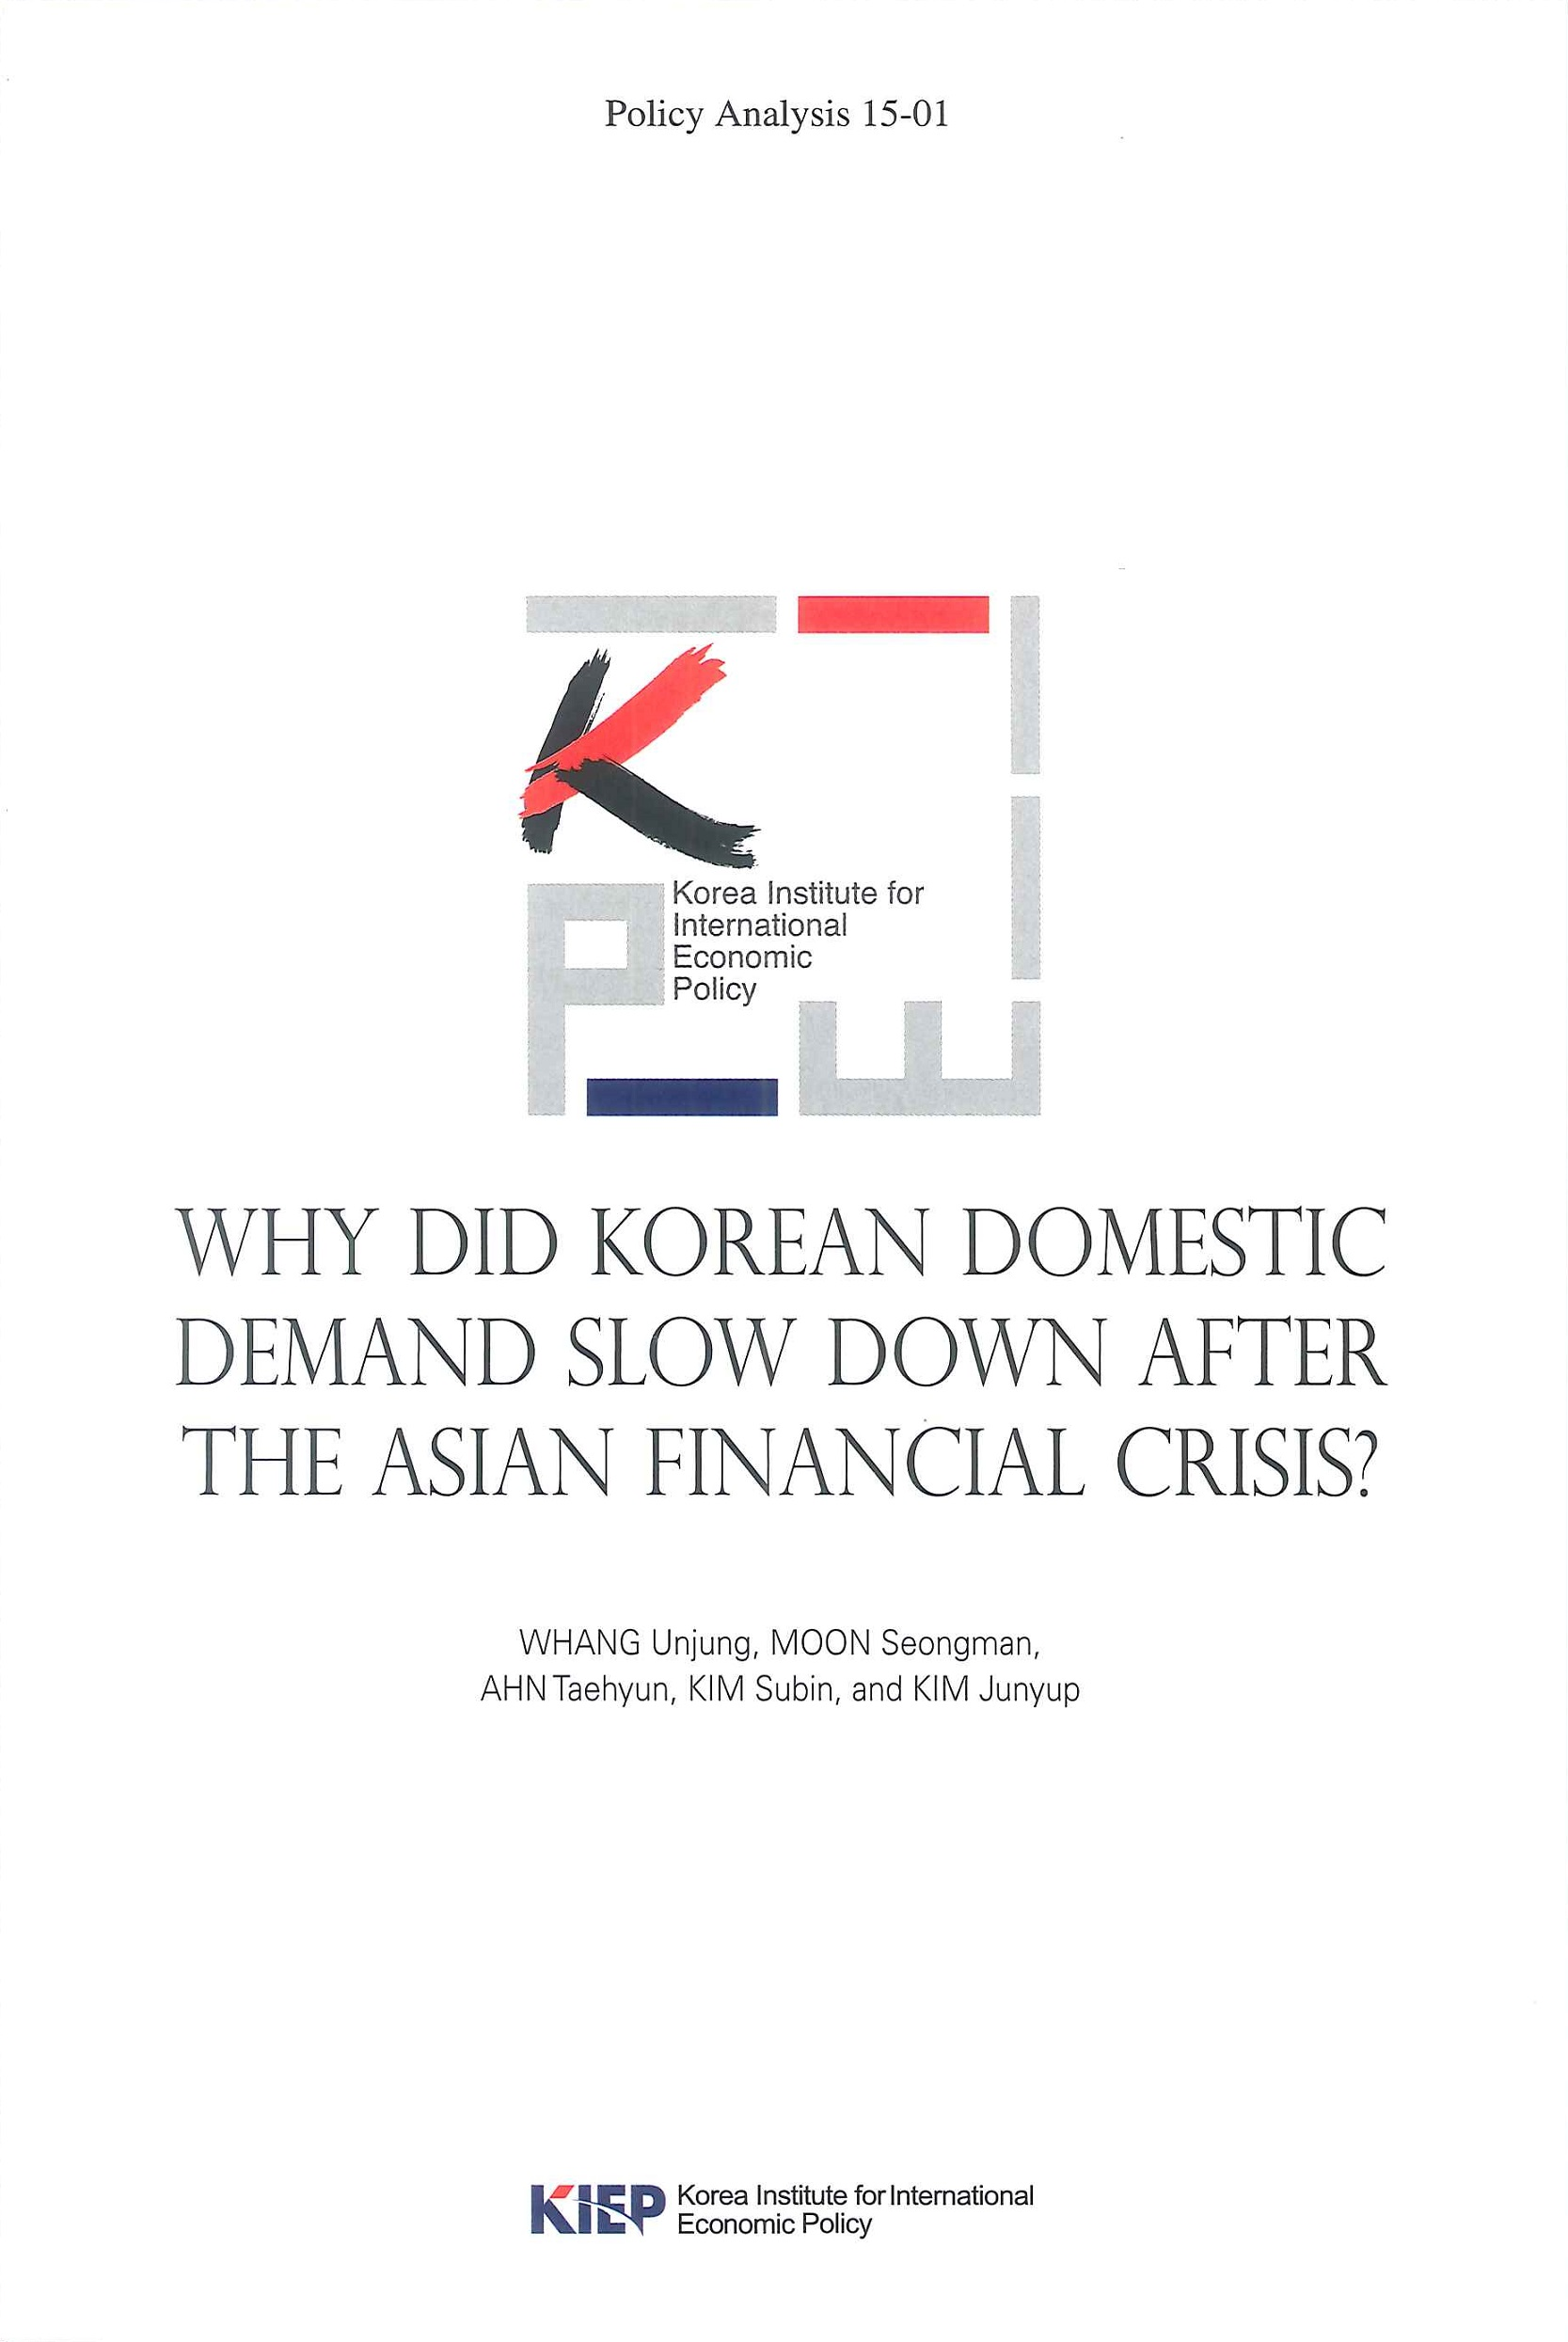 Why did Korean domestic demand slow down after the Asian financial crisis?